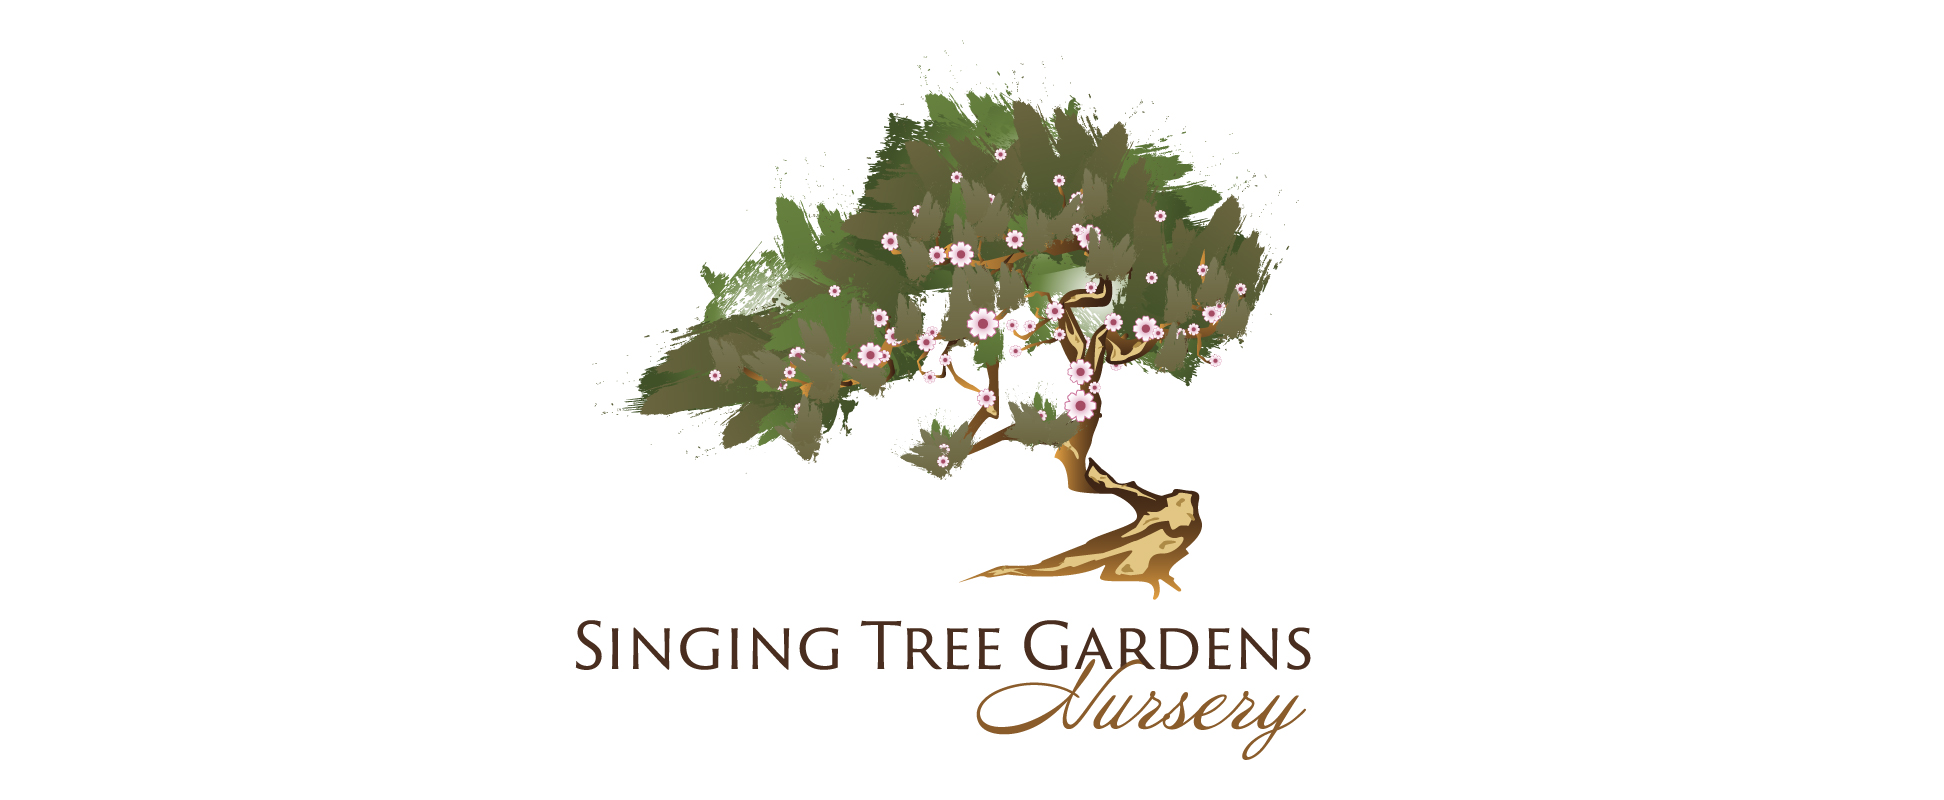 Image showcasing Singing Tree Gardens Logo